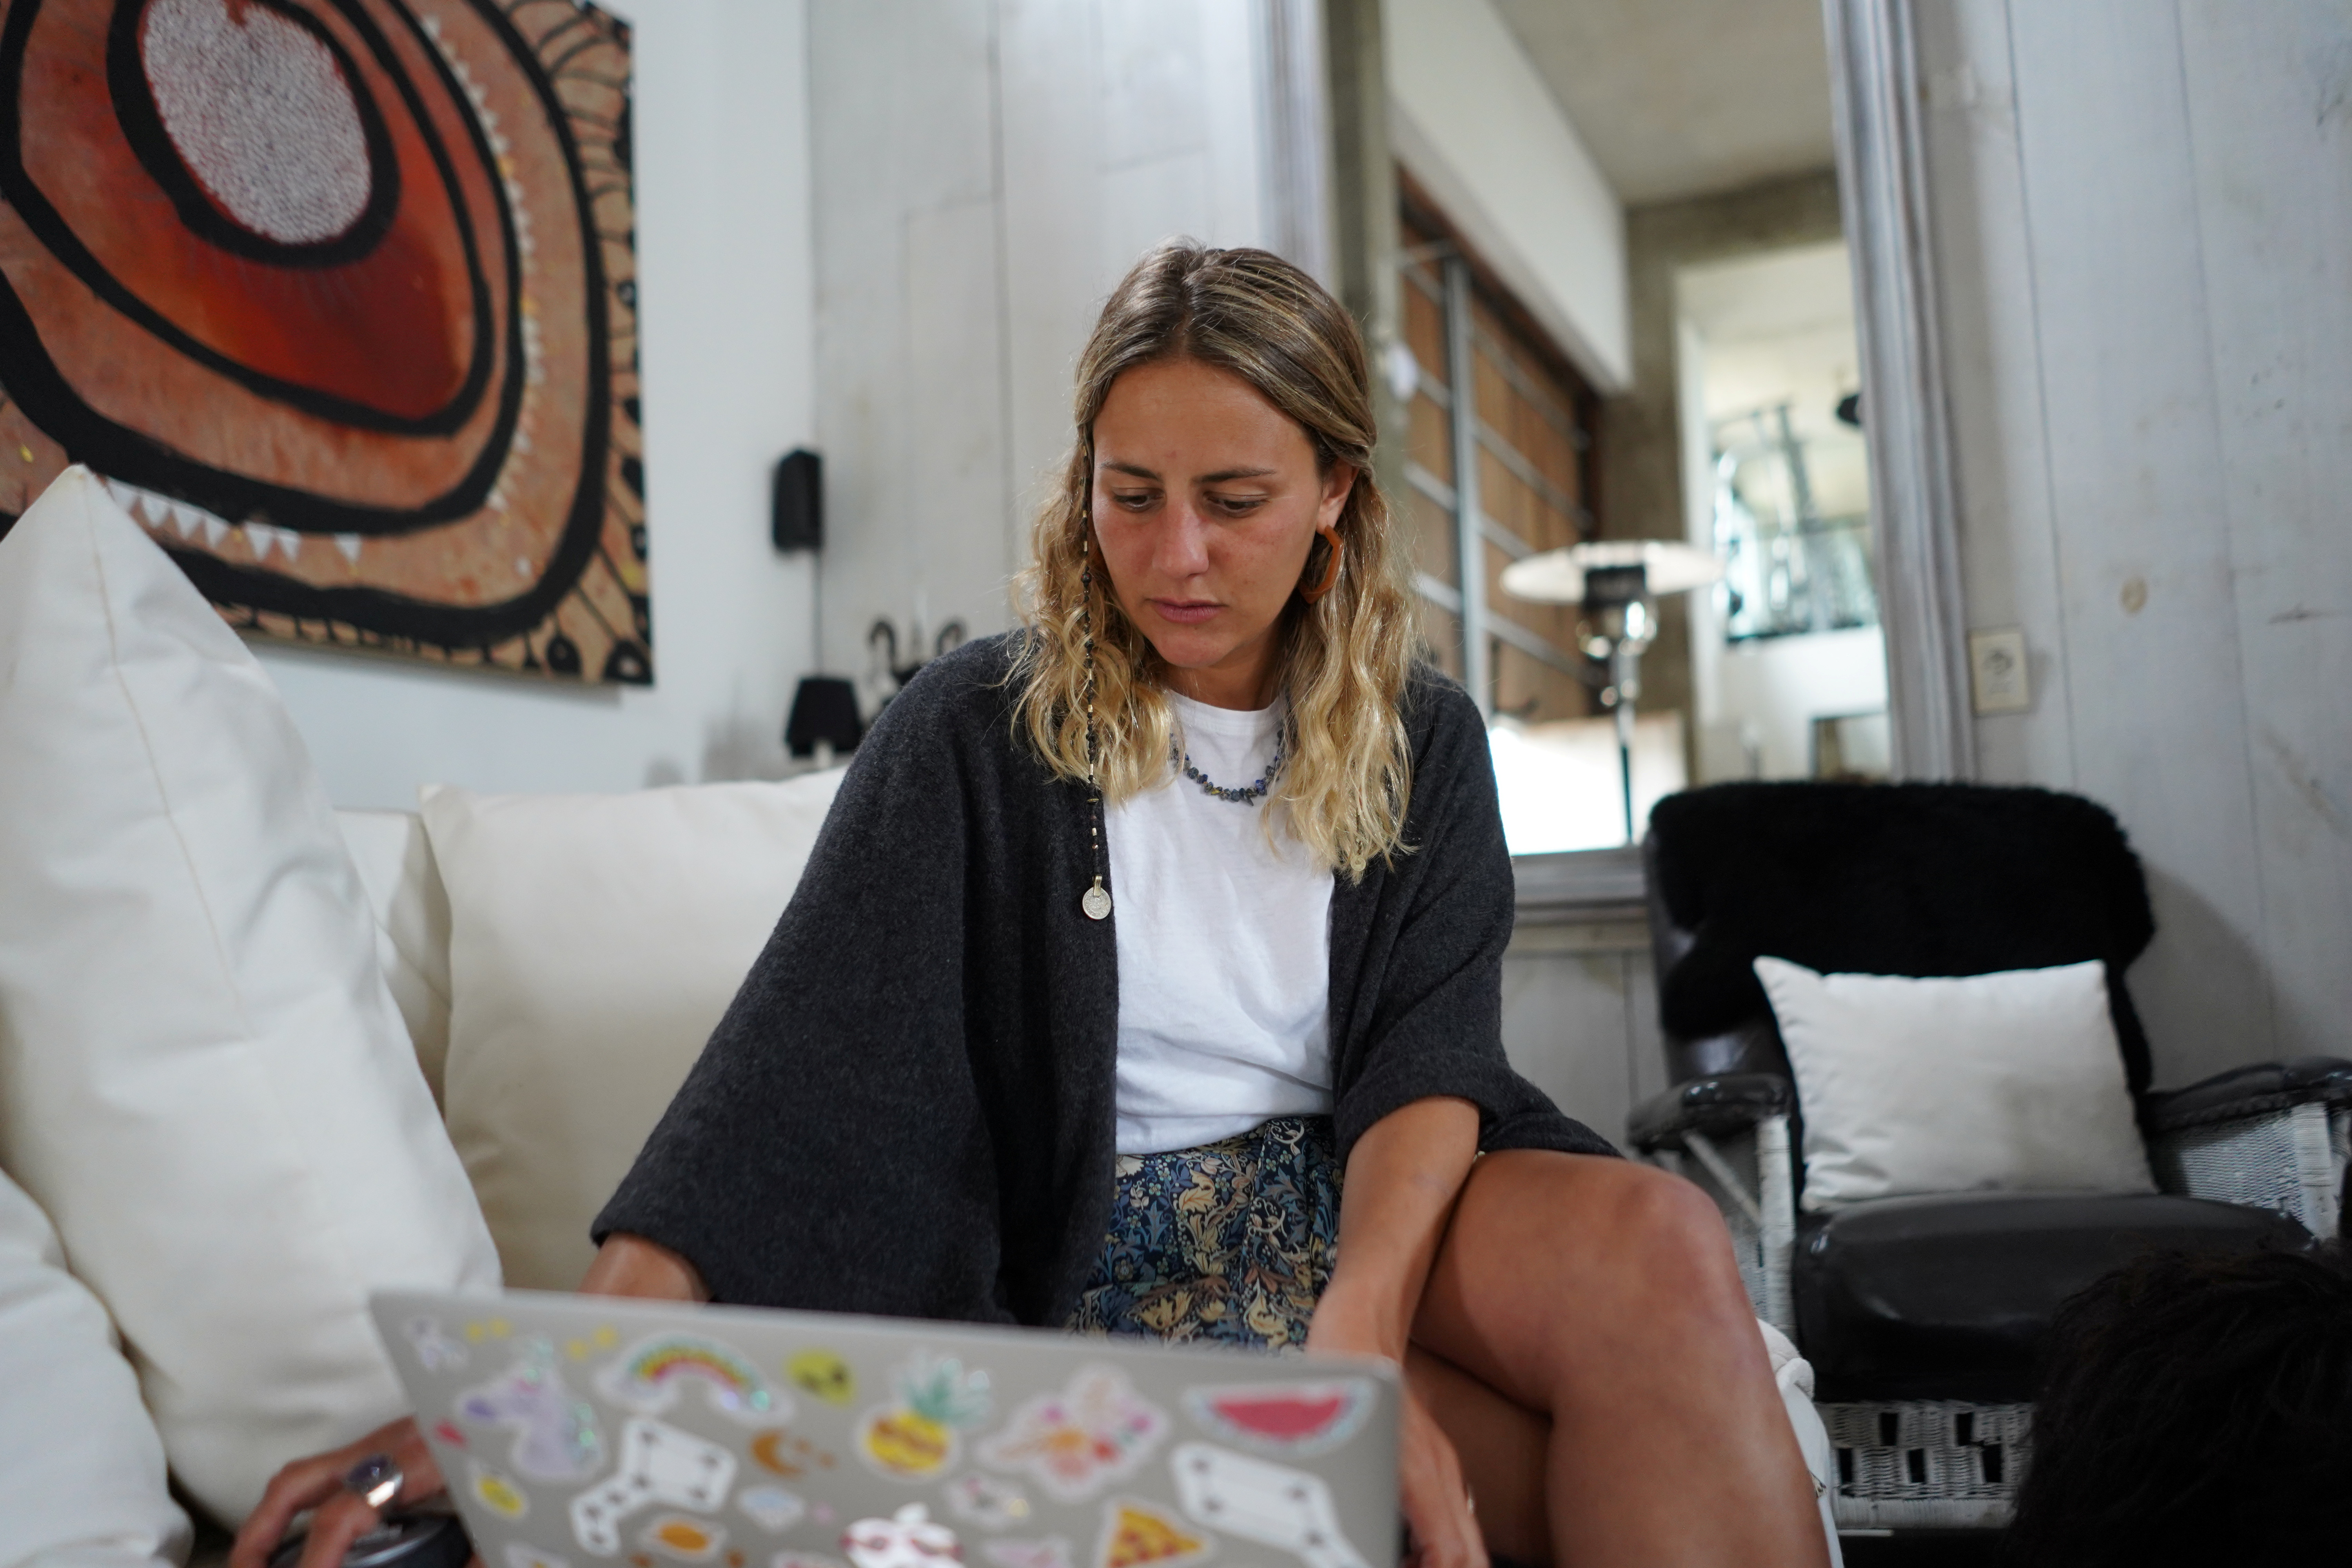 a woman sits at her laptop in a home setting